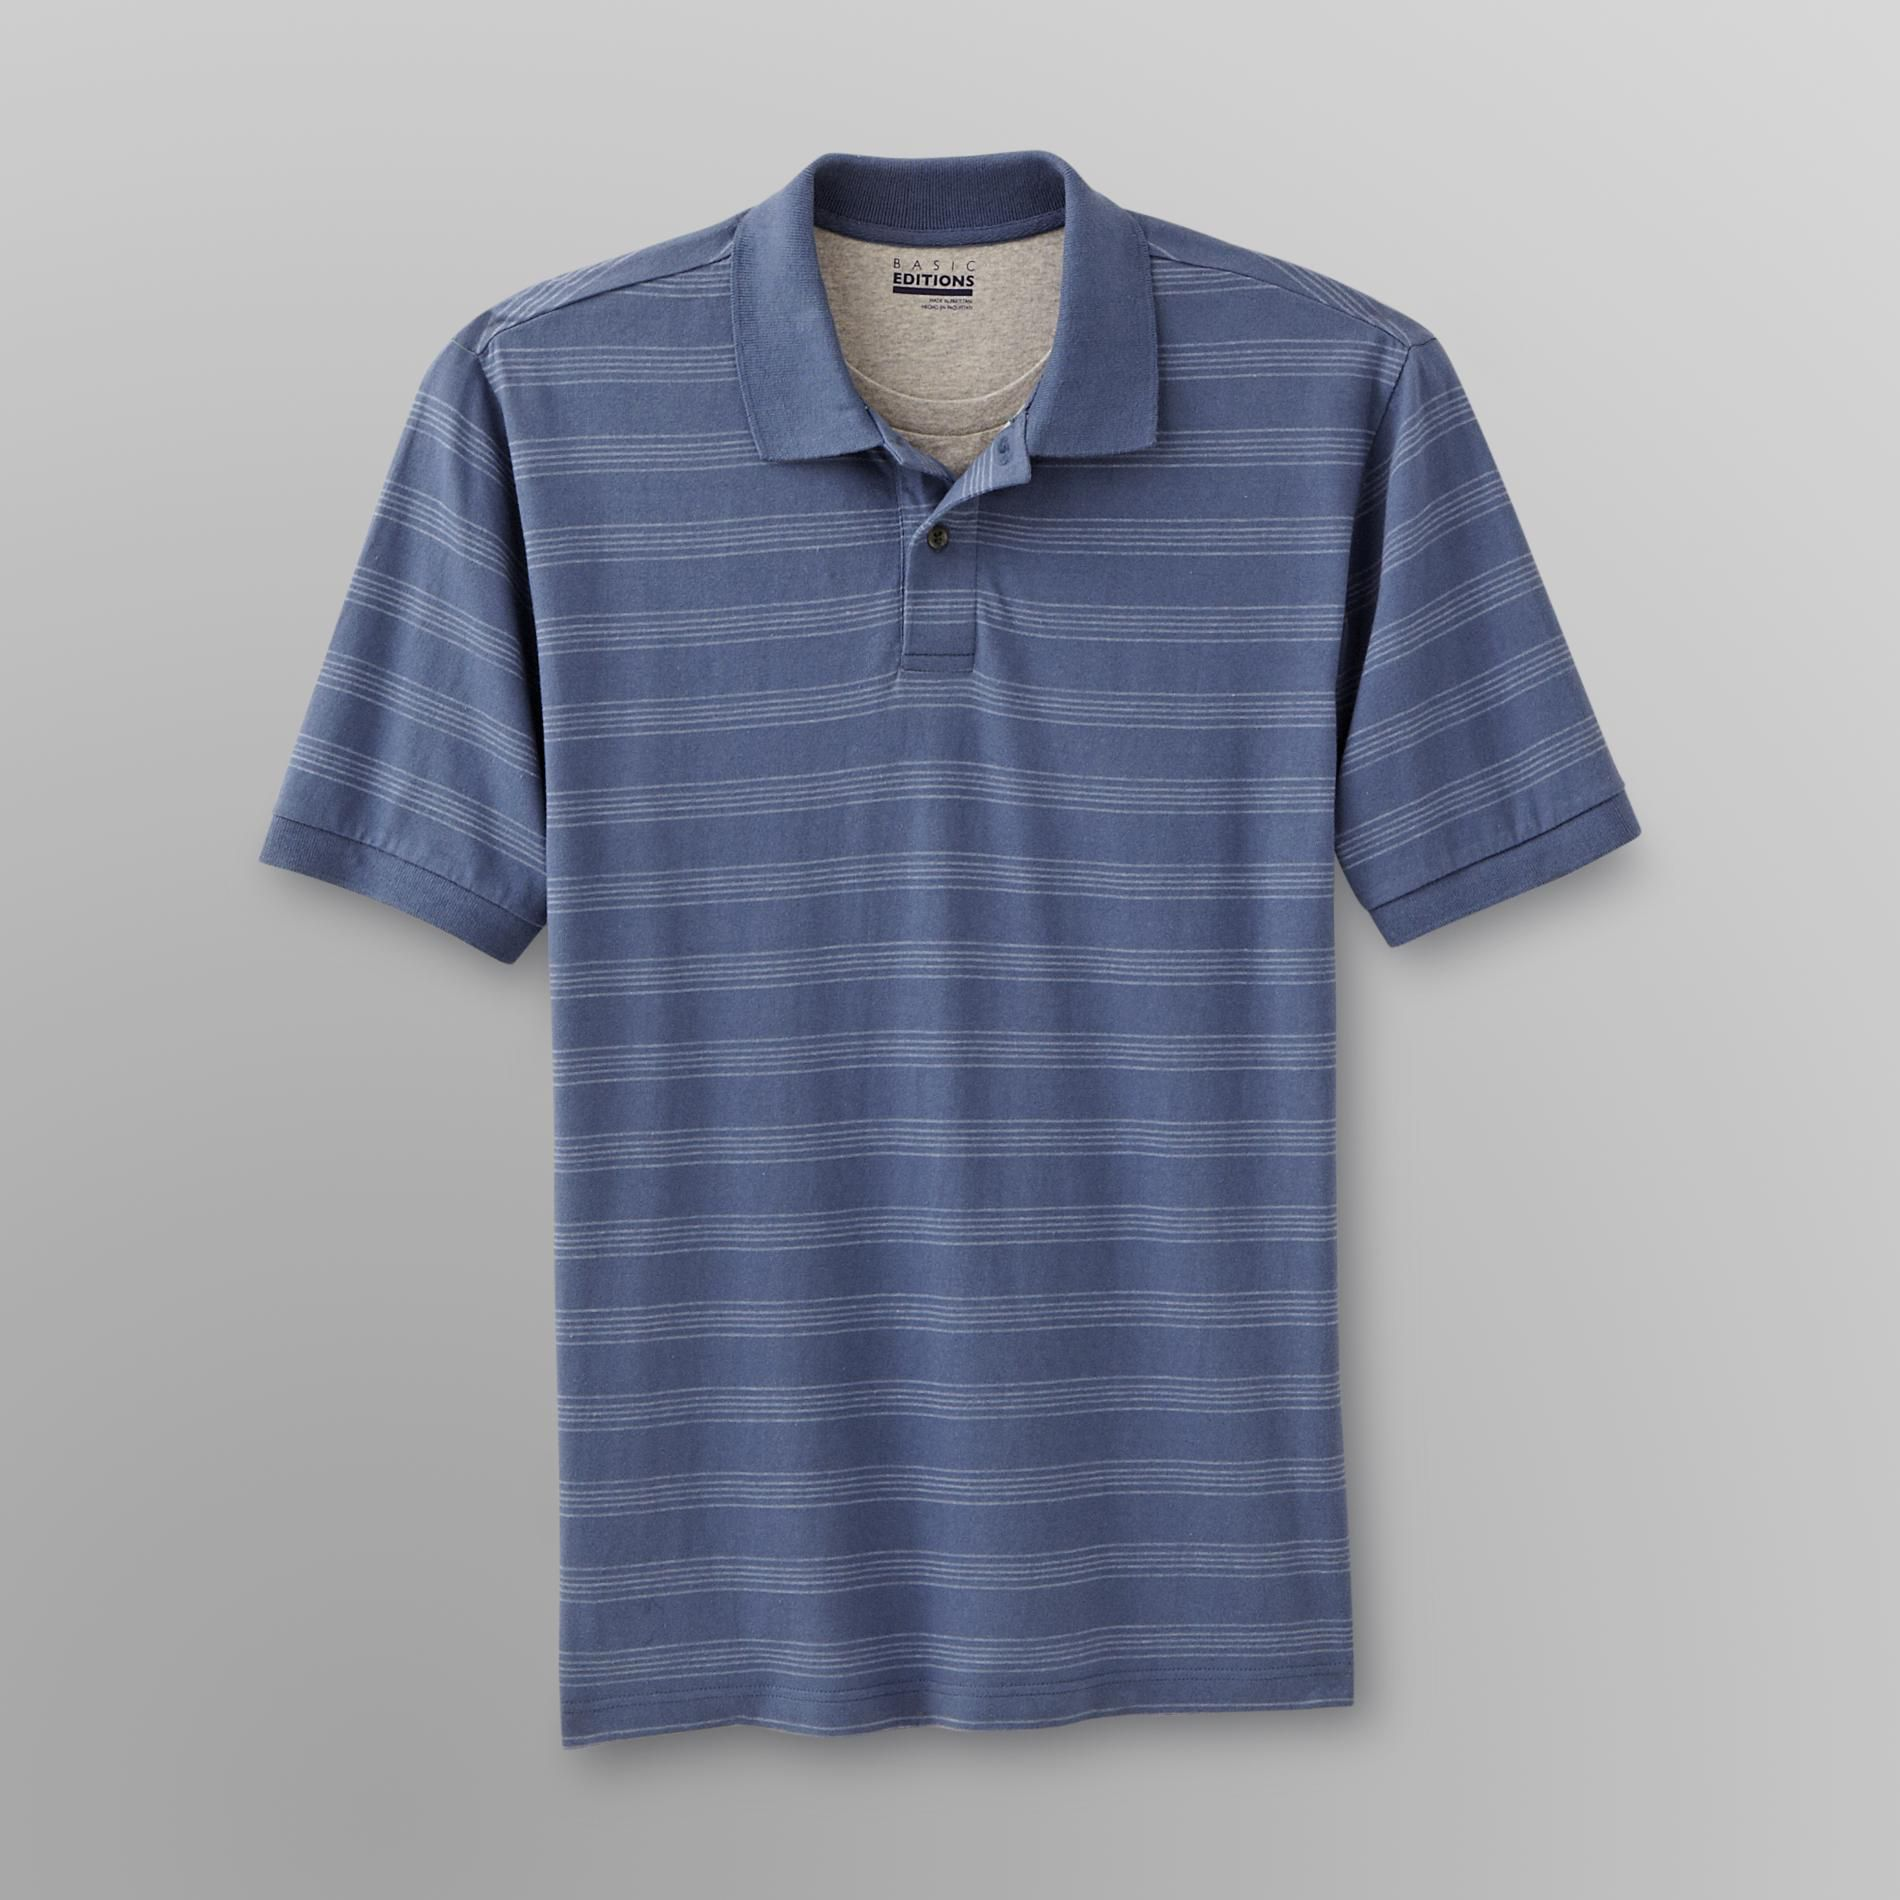 Basic Editions Men's Polo Shirt with Inset - Striped at Kmart.com